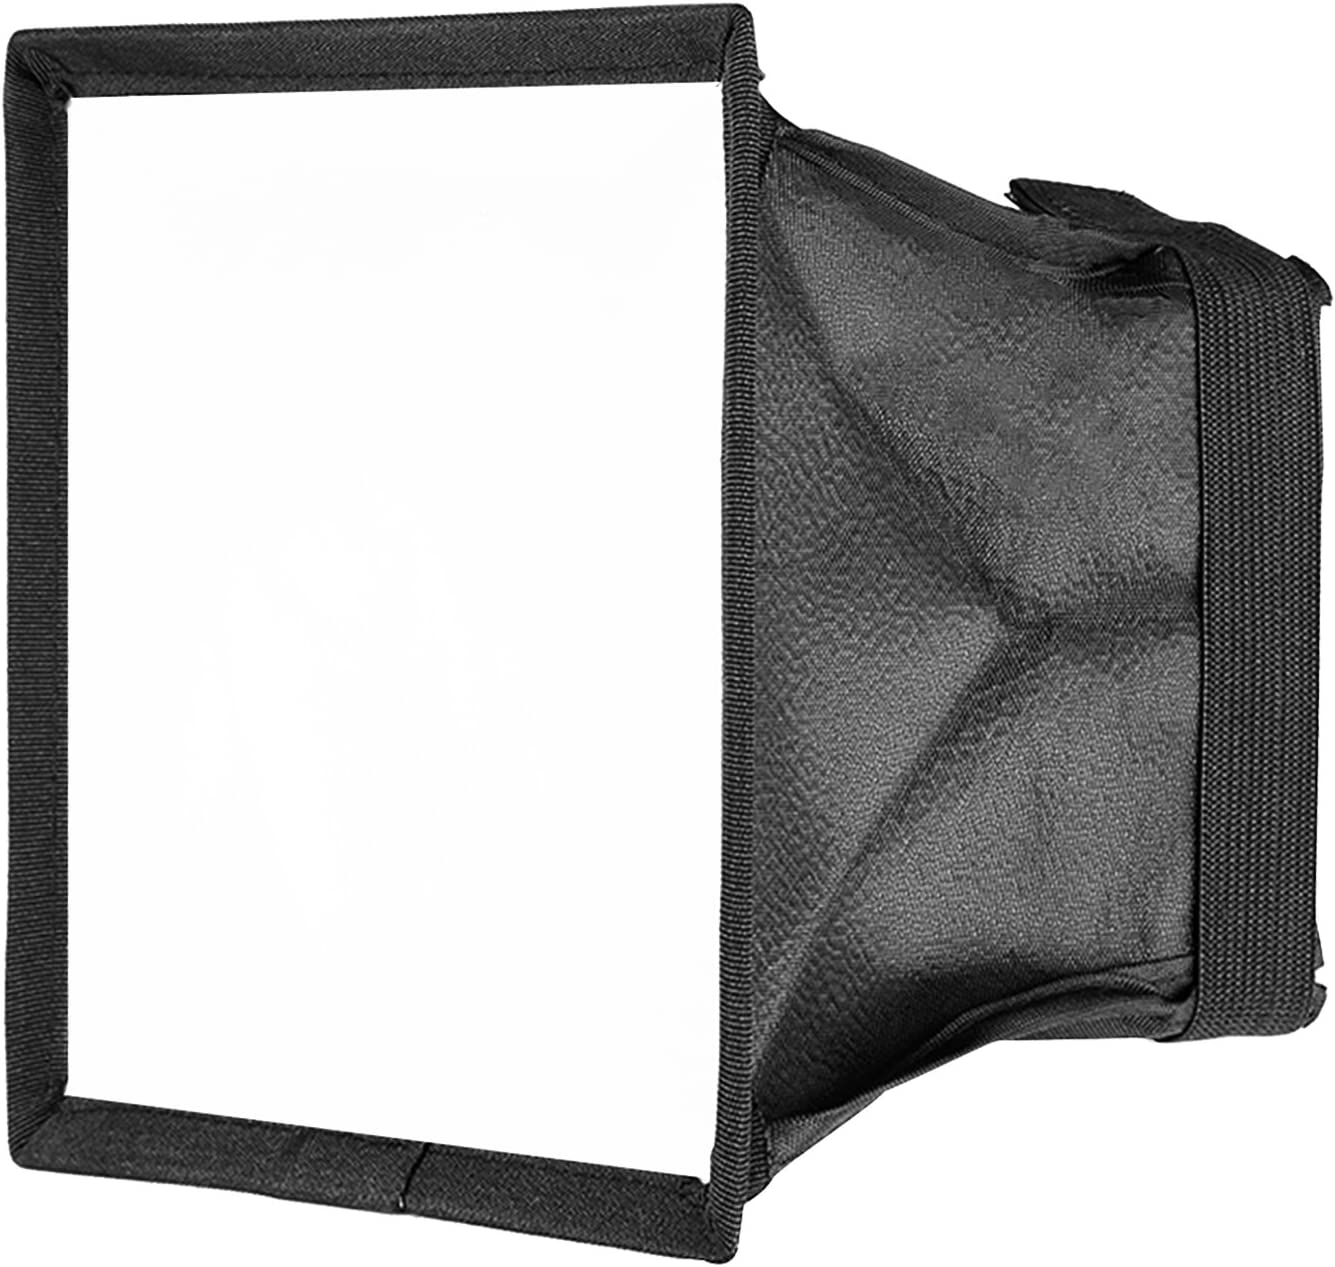 Neewer 5.9x6.7 inches15x17 centimeters Camera Collapsible Diffuser Mini Softbox for CN 160, CN 126 and CN 216 LED Light (White)